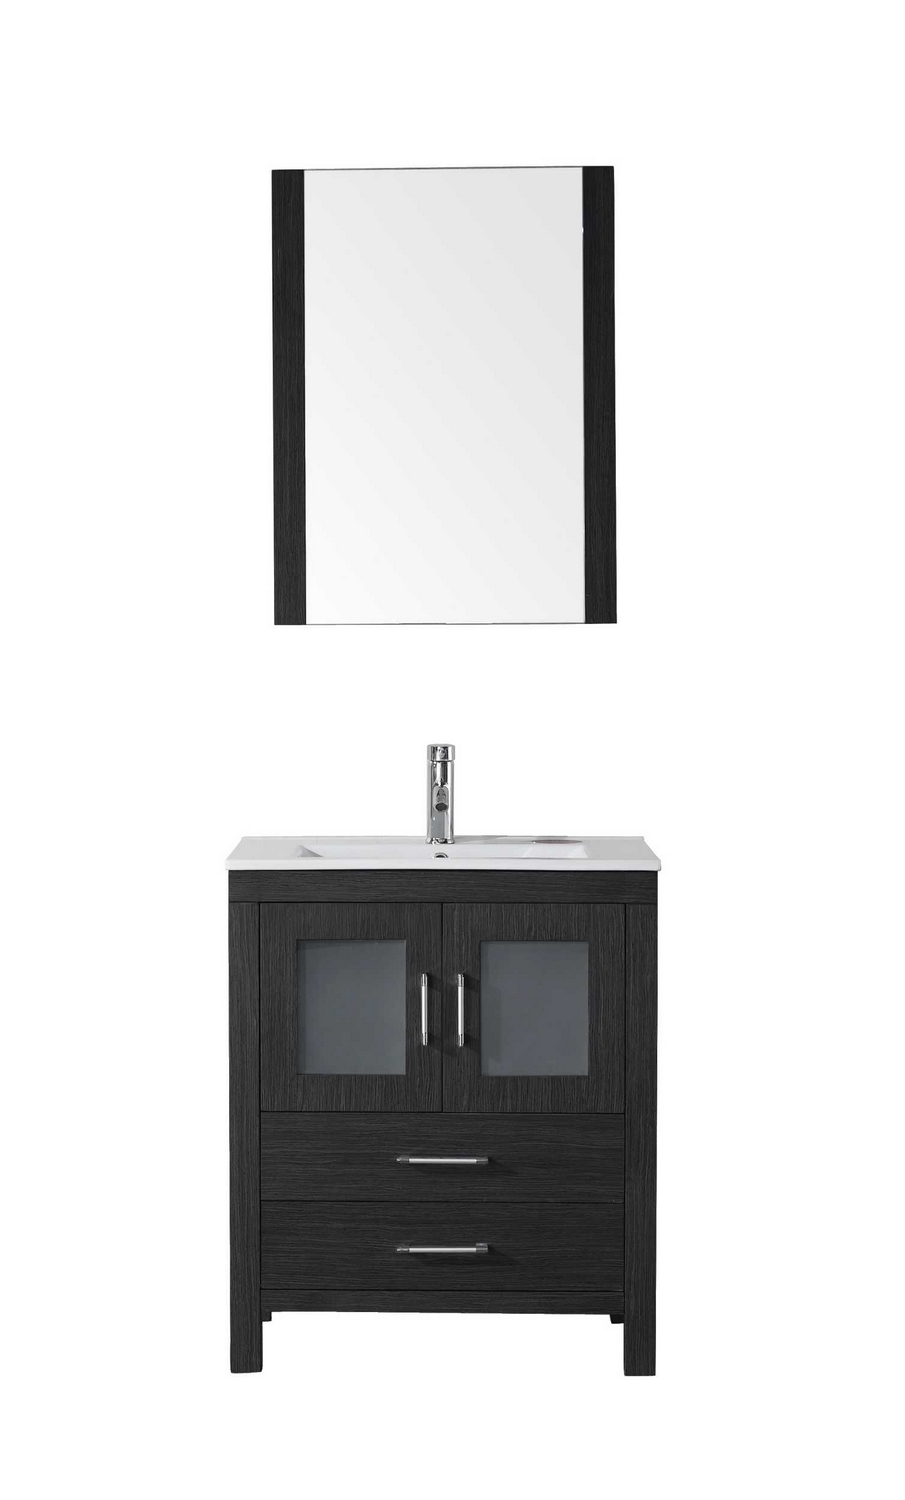 virtu usa dior 28 single bathroom vanity cabinet set in zebra grey